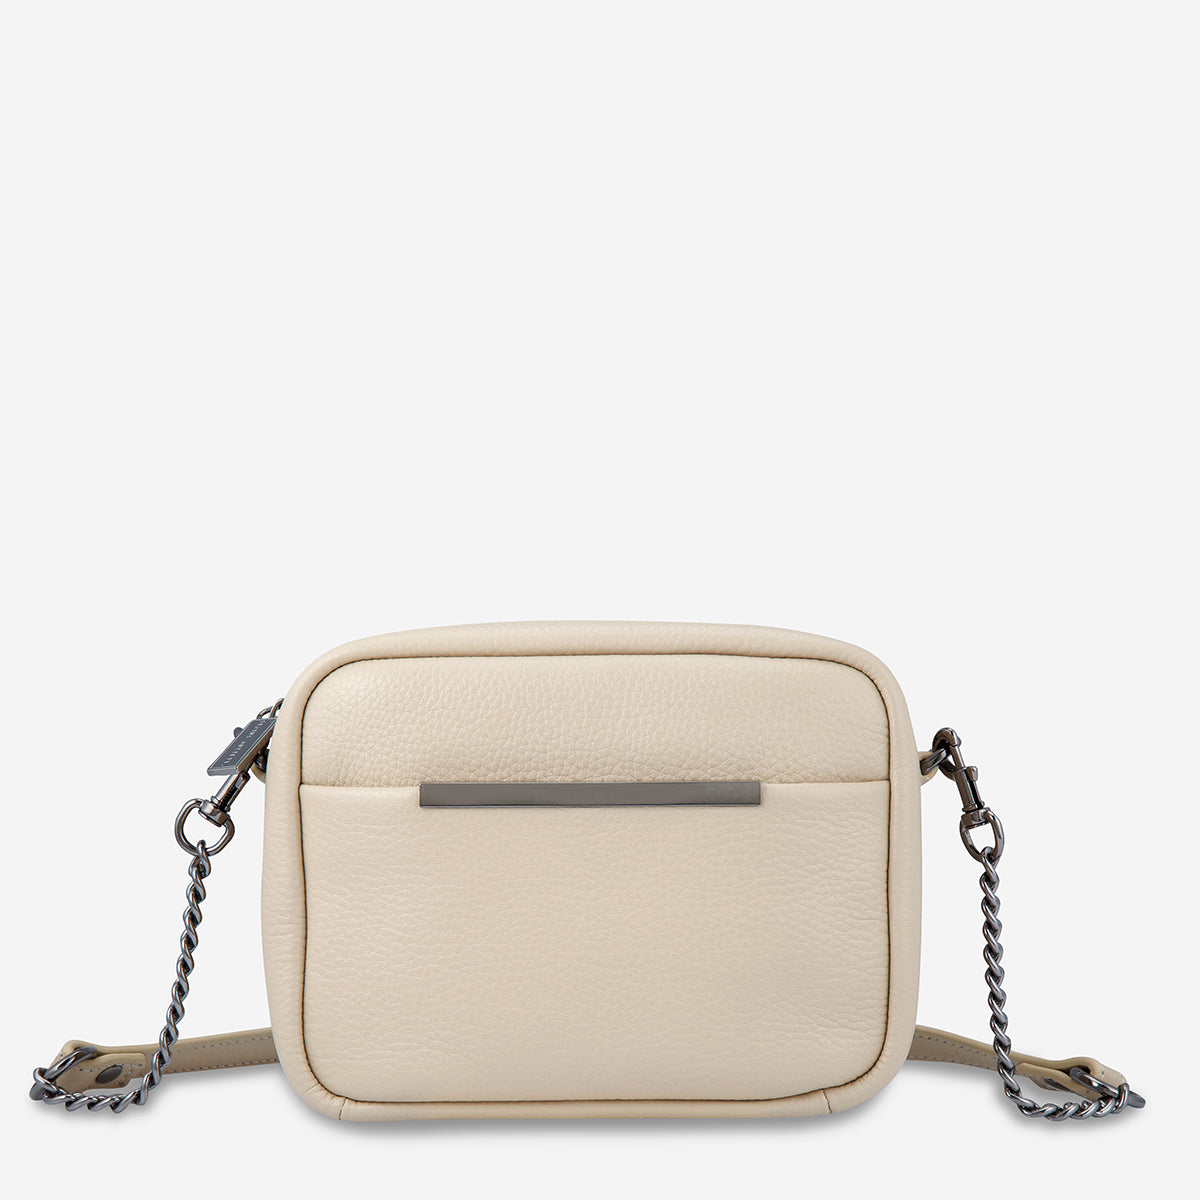 Status Anxiety Cult Crossbody Bag - Nude